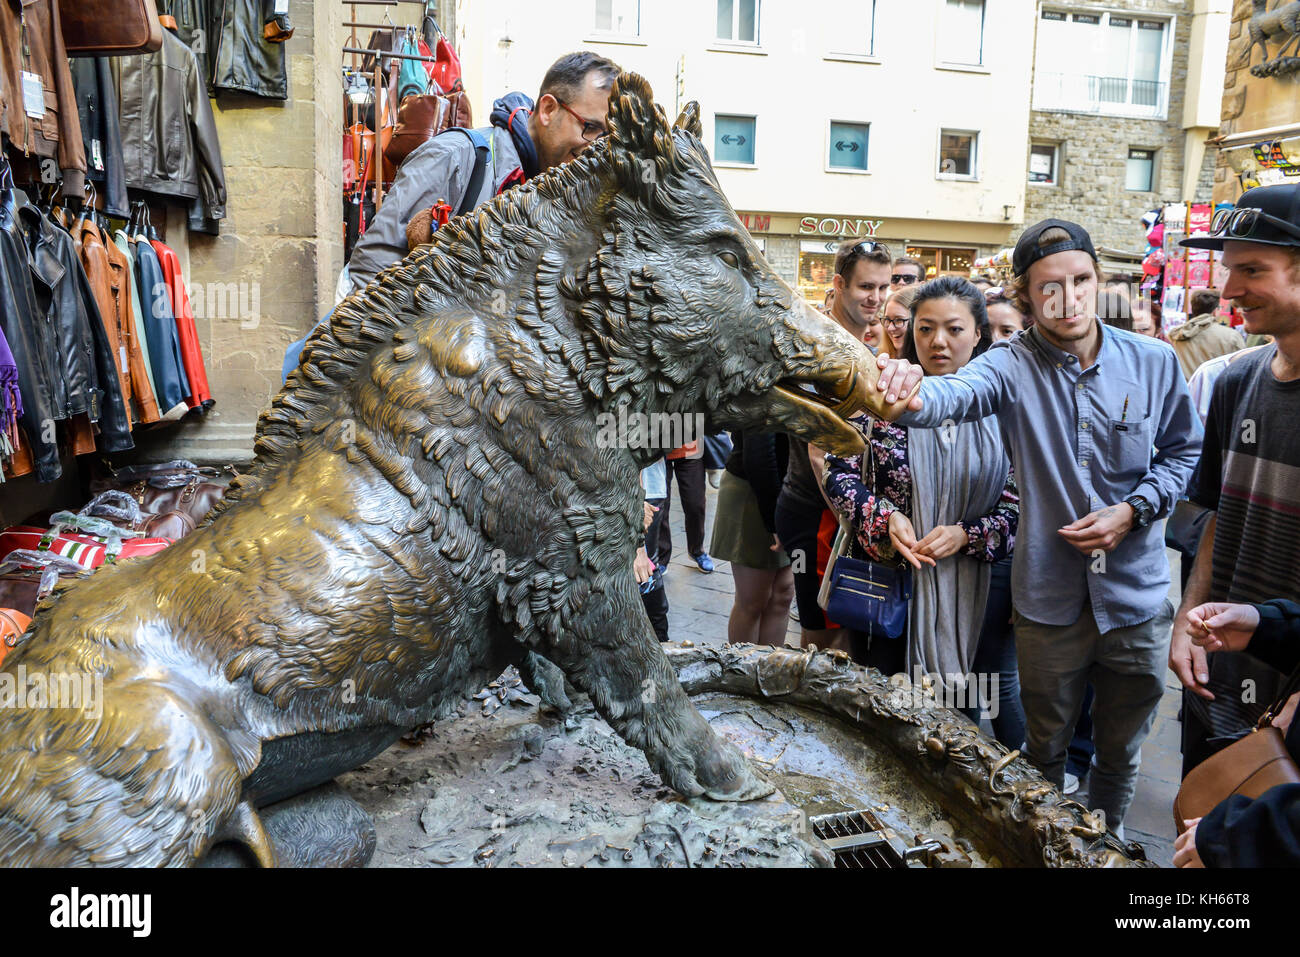 'Il Porcellino' wild boar statue at the Mercato Nuovo in Florence. Rub his snout for good luck and drop - Stock Image